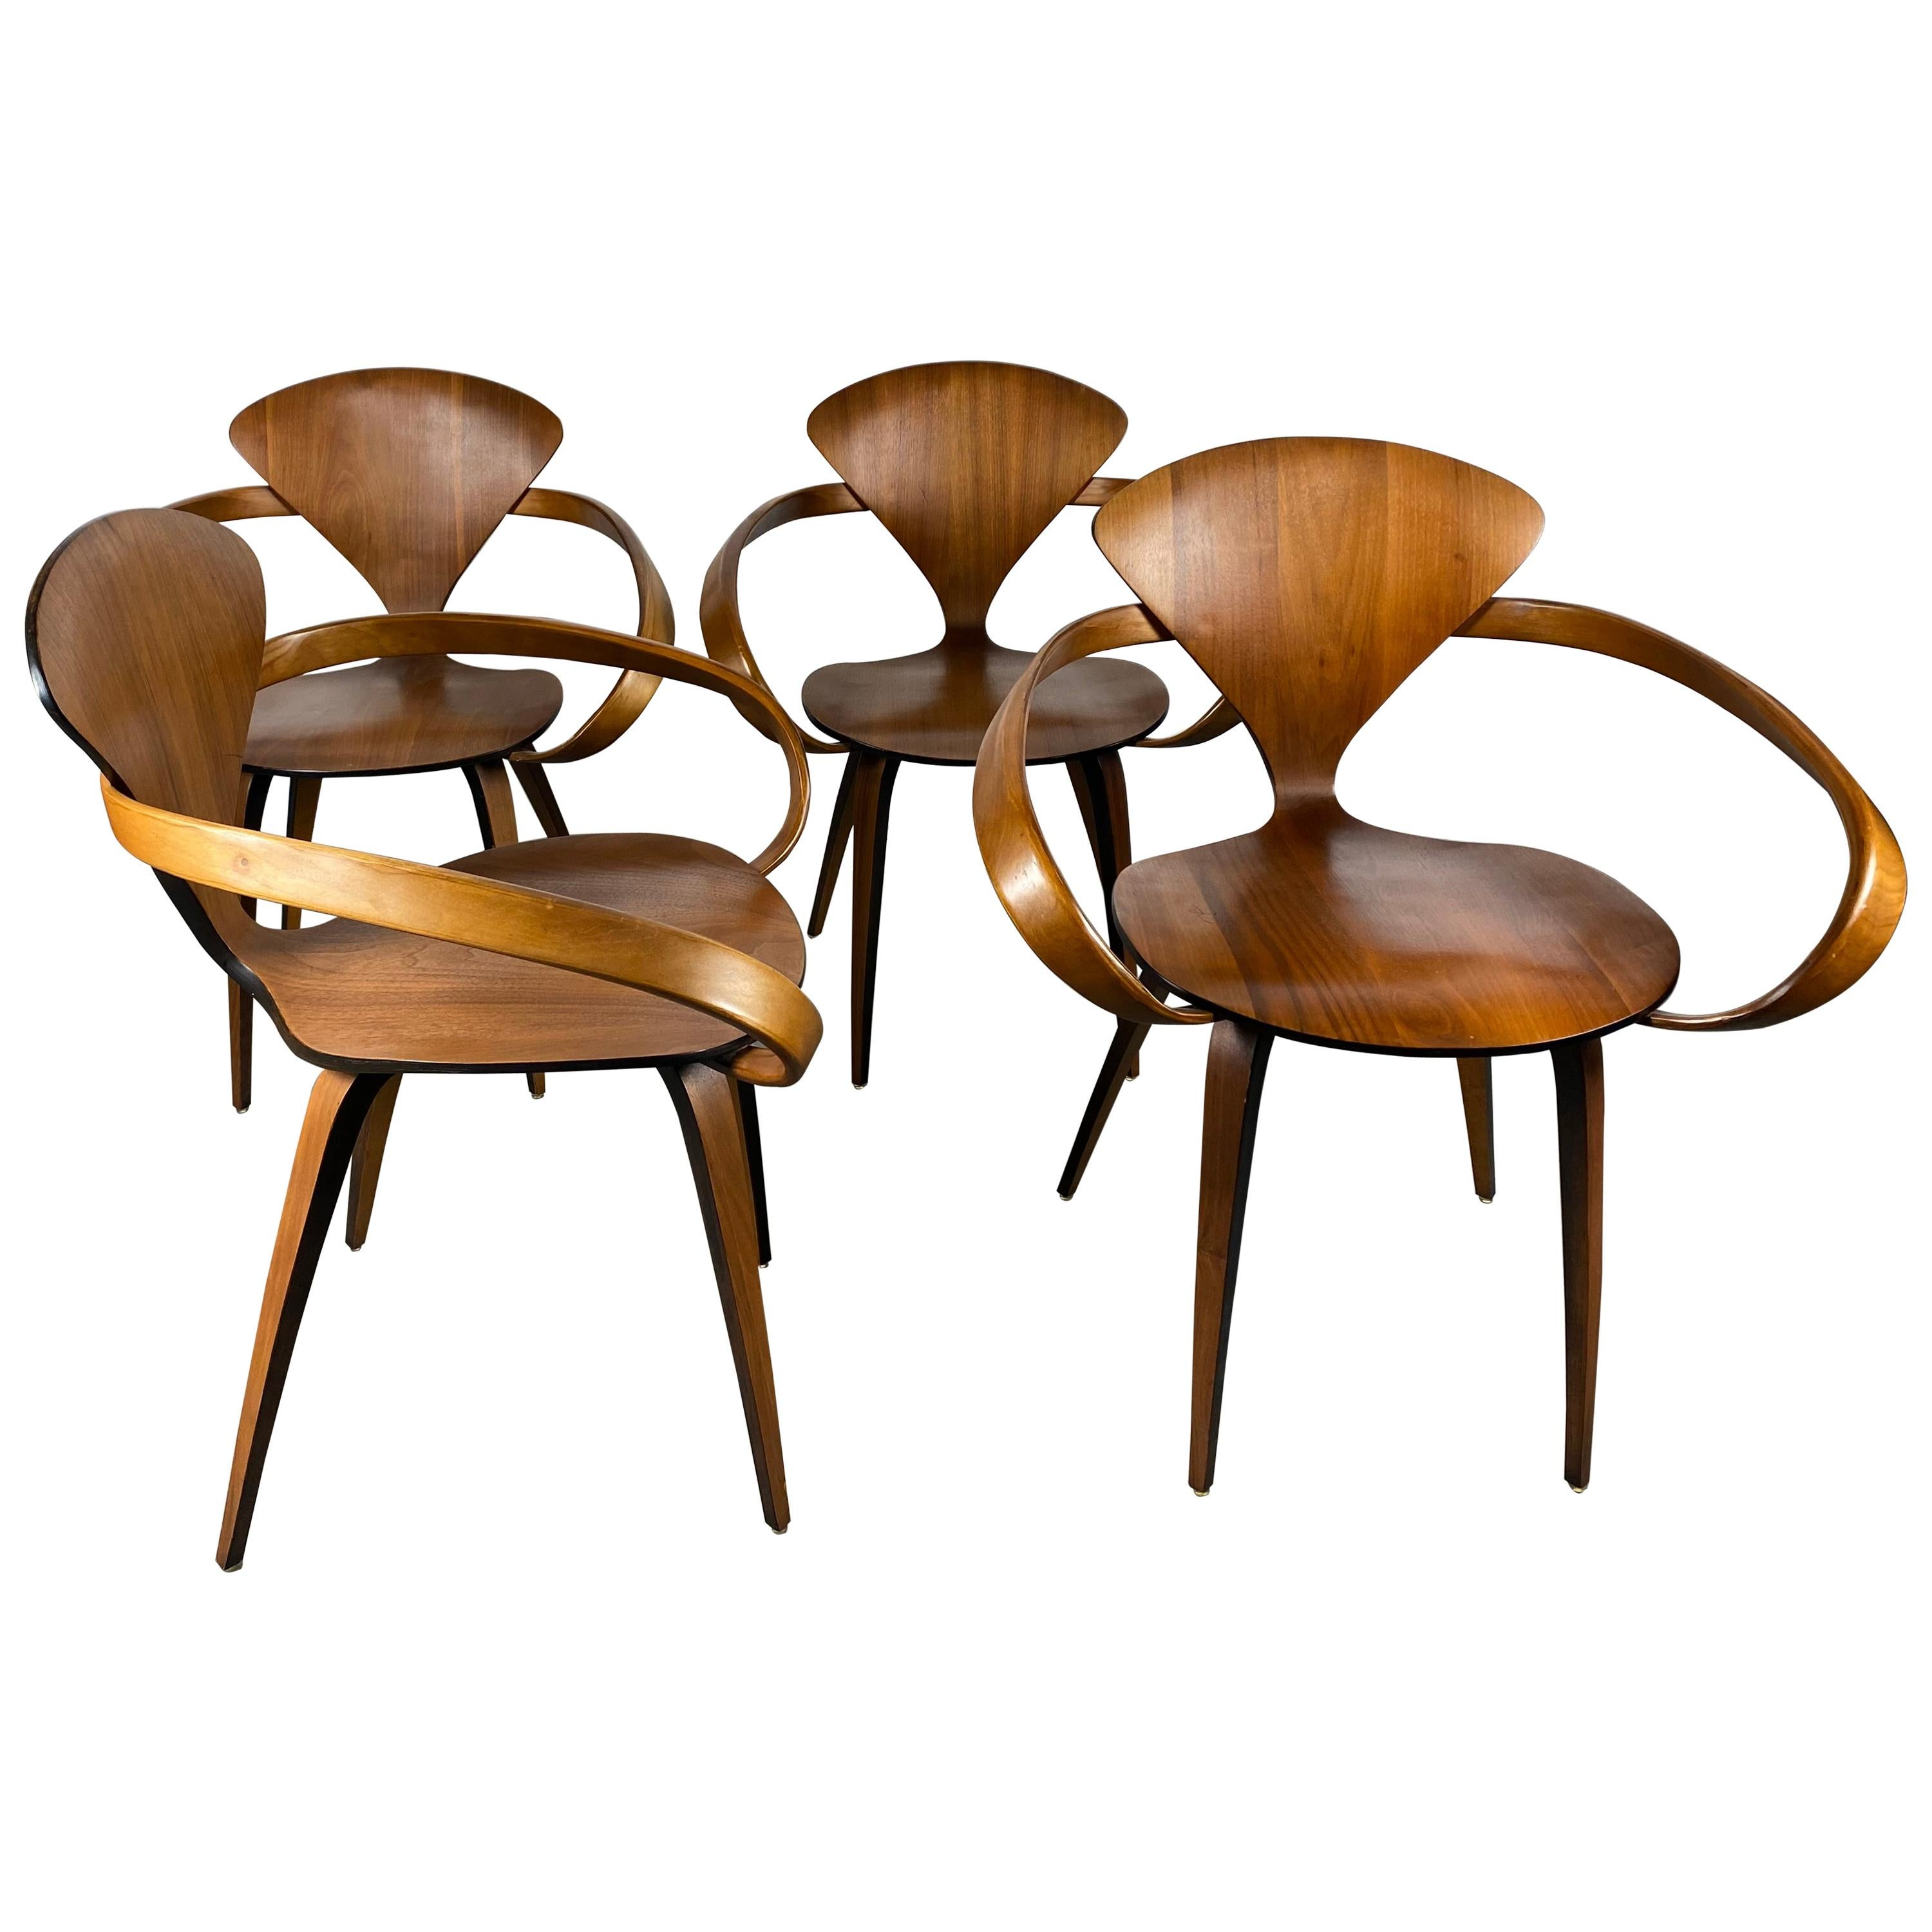 Classic Modernist Plywood Pretzel Armchair by Norman Cherner for Plycraft